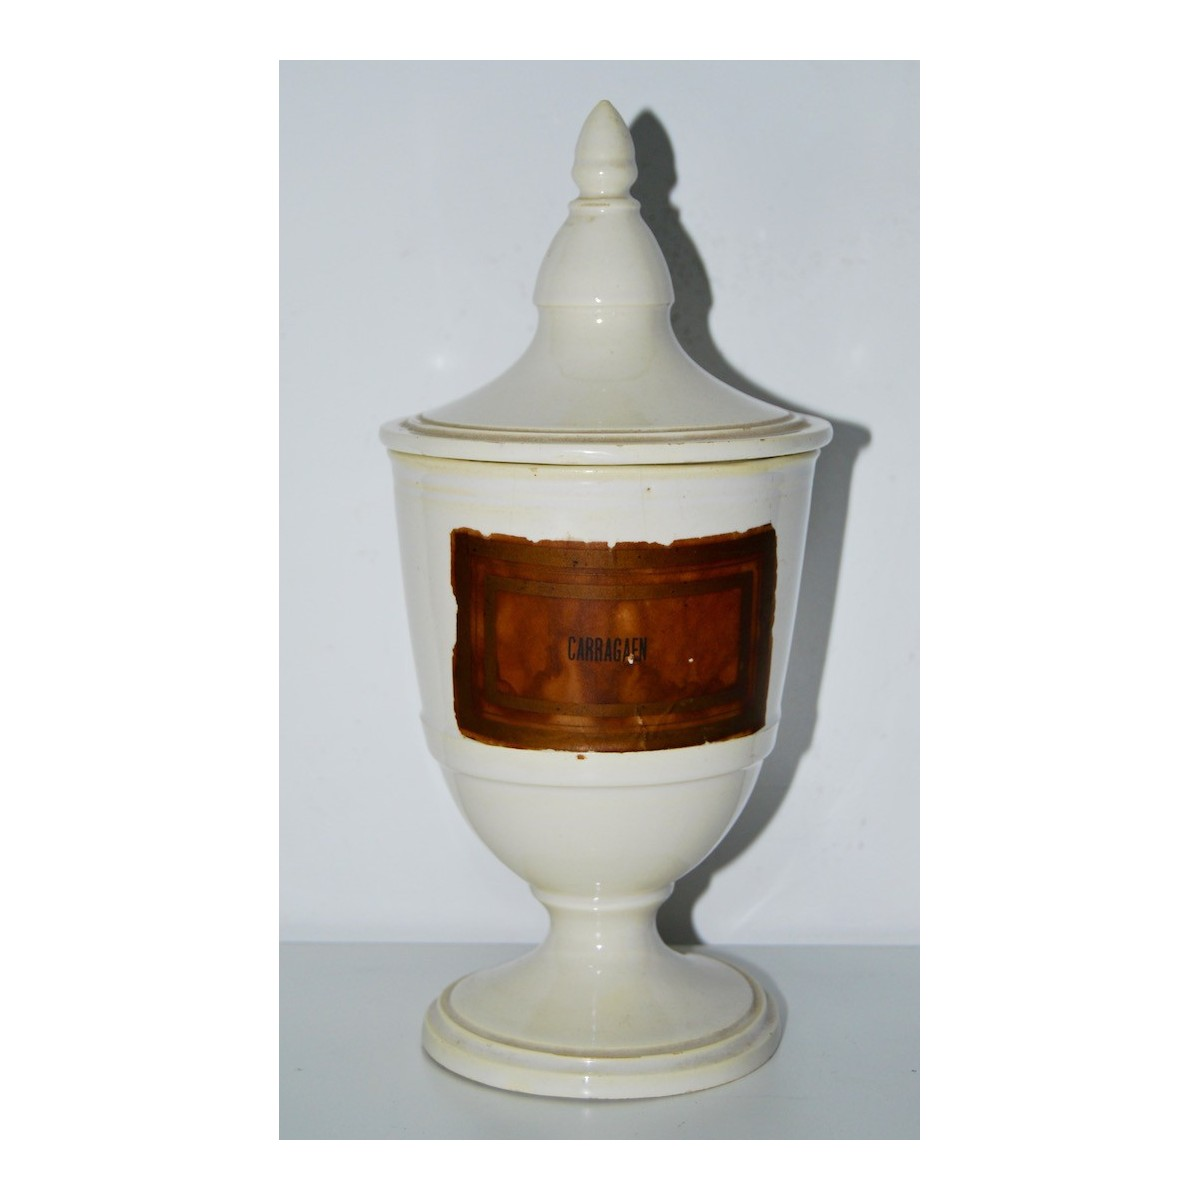 Ceramic pharmacy jar 19th